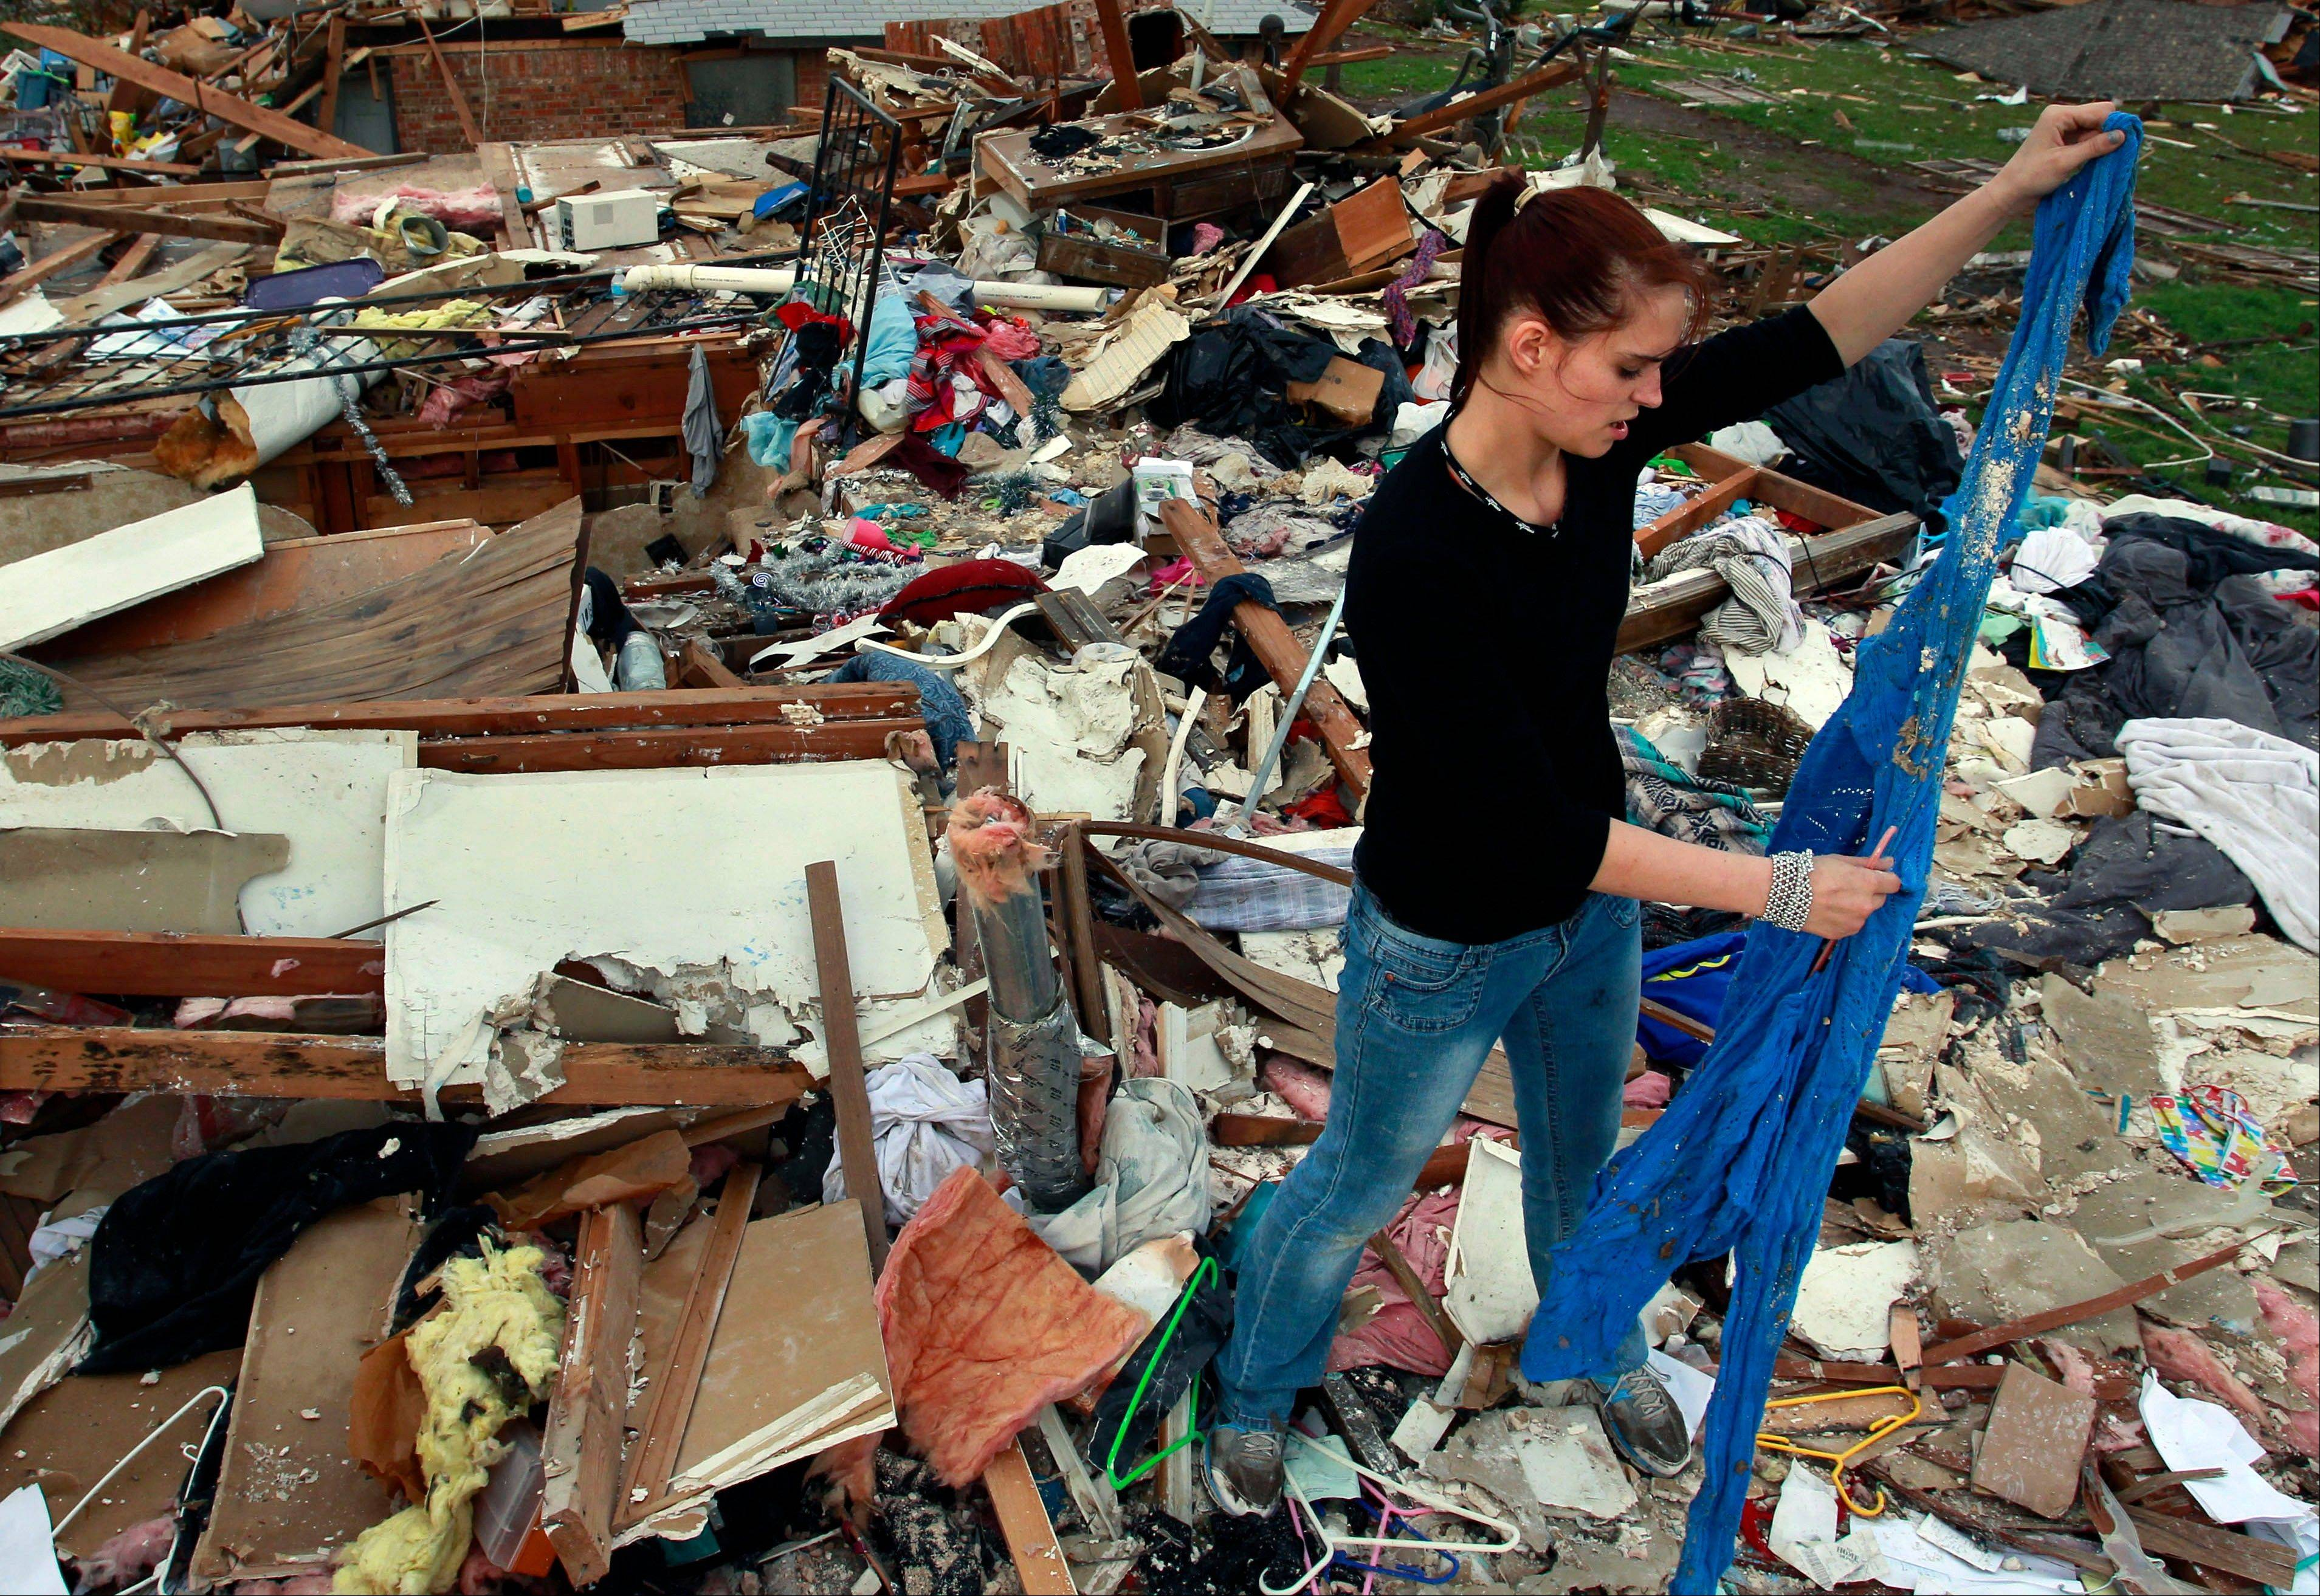 Sabrina Mitchell, 19, examines a sweatshirt on Friday as she salvages items from the wreckage of her home which was destroyed earlier in the week when a tornado hit Moore, Okla.